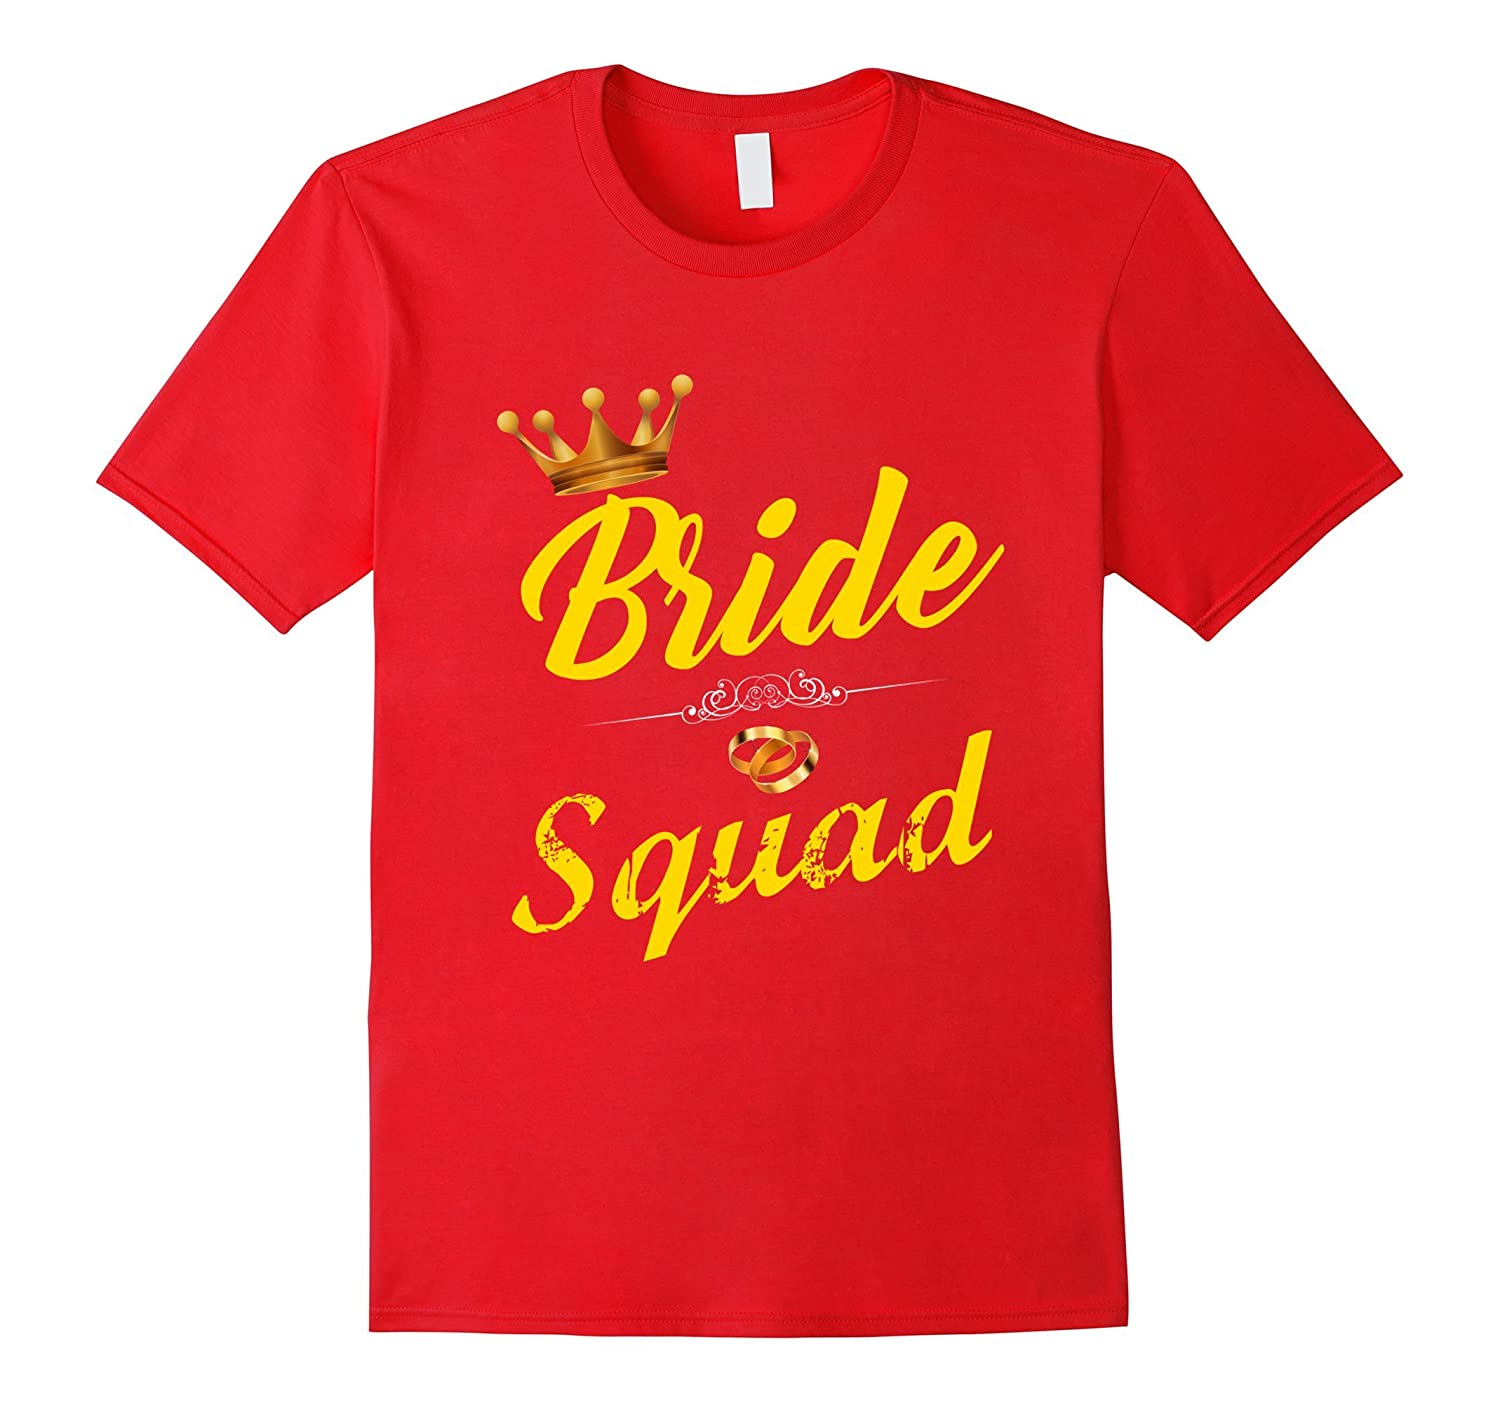 Bride Squad Bridal Party Wedding T-Shirt-Vaci